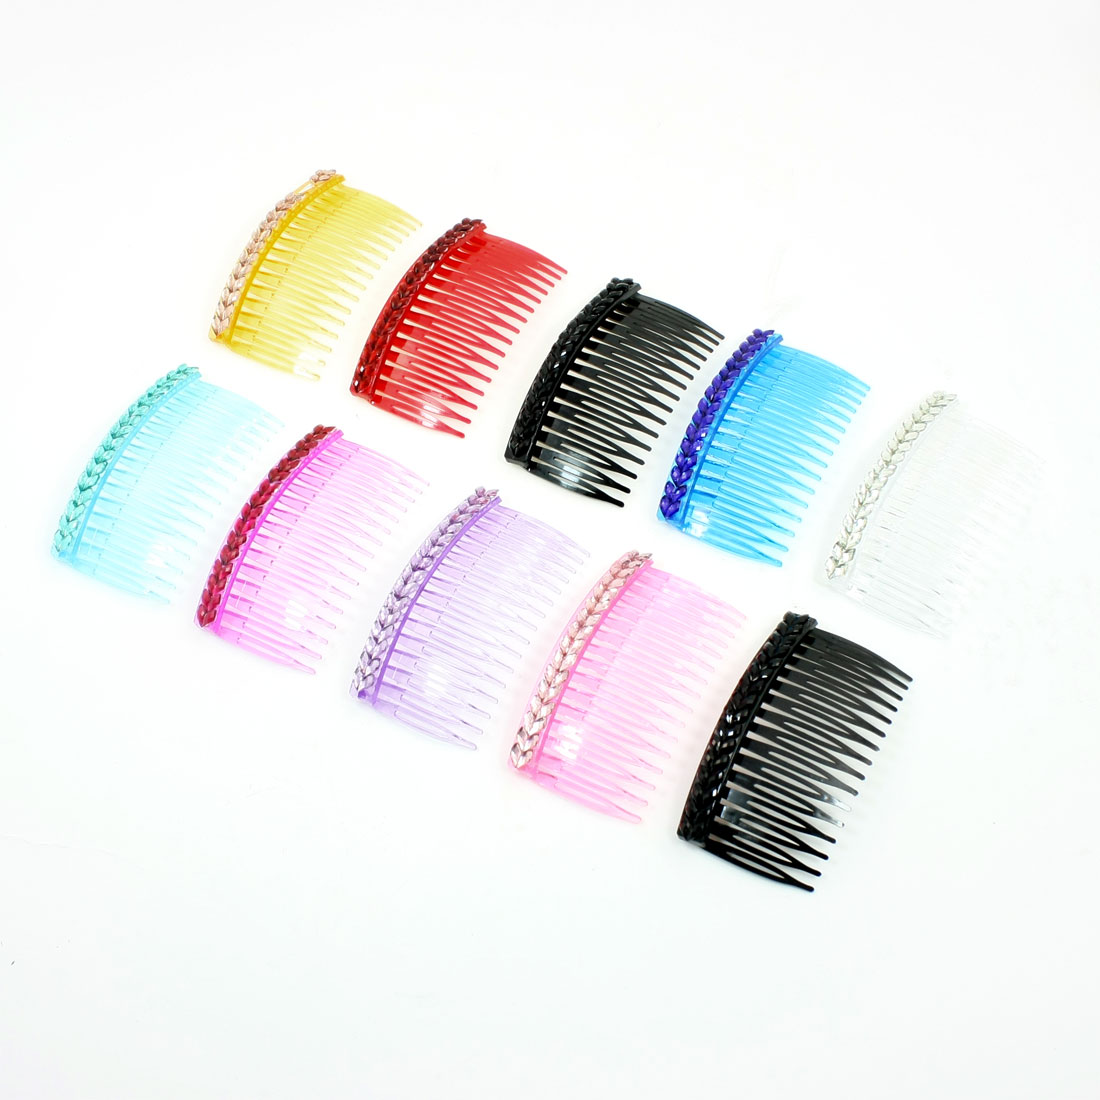 10 Pcs Assorted Color Double Row Rhinestone Decor Hair Comb for Women